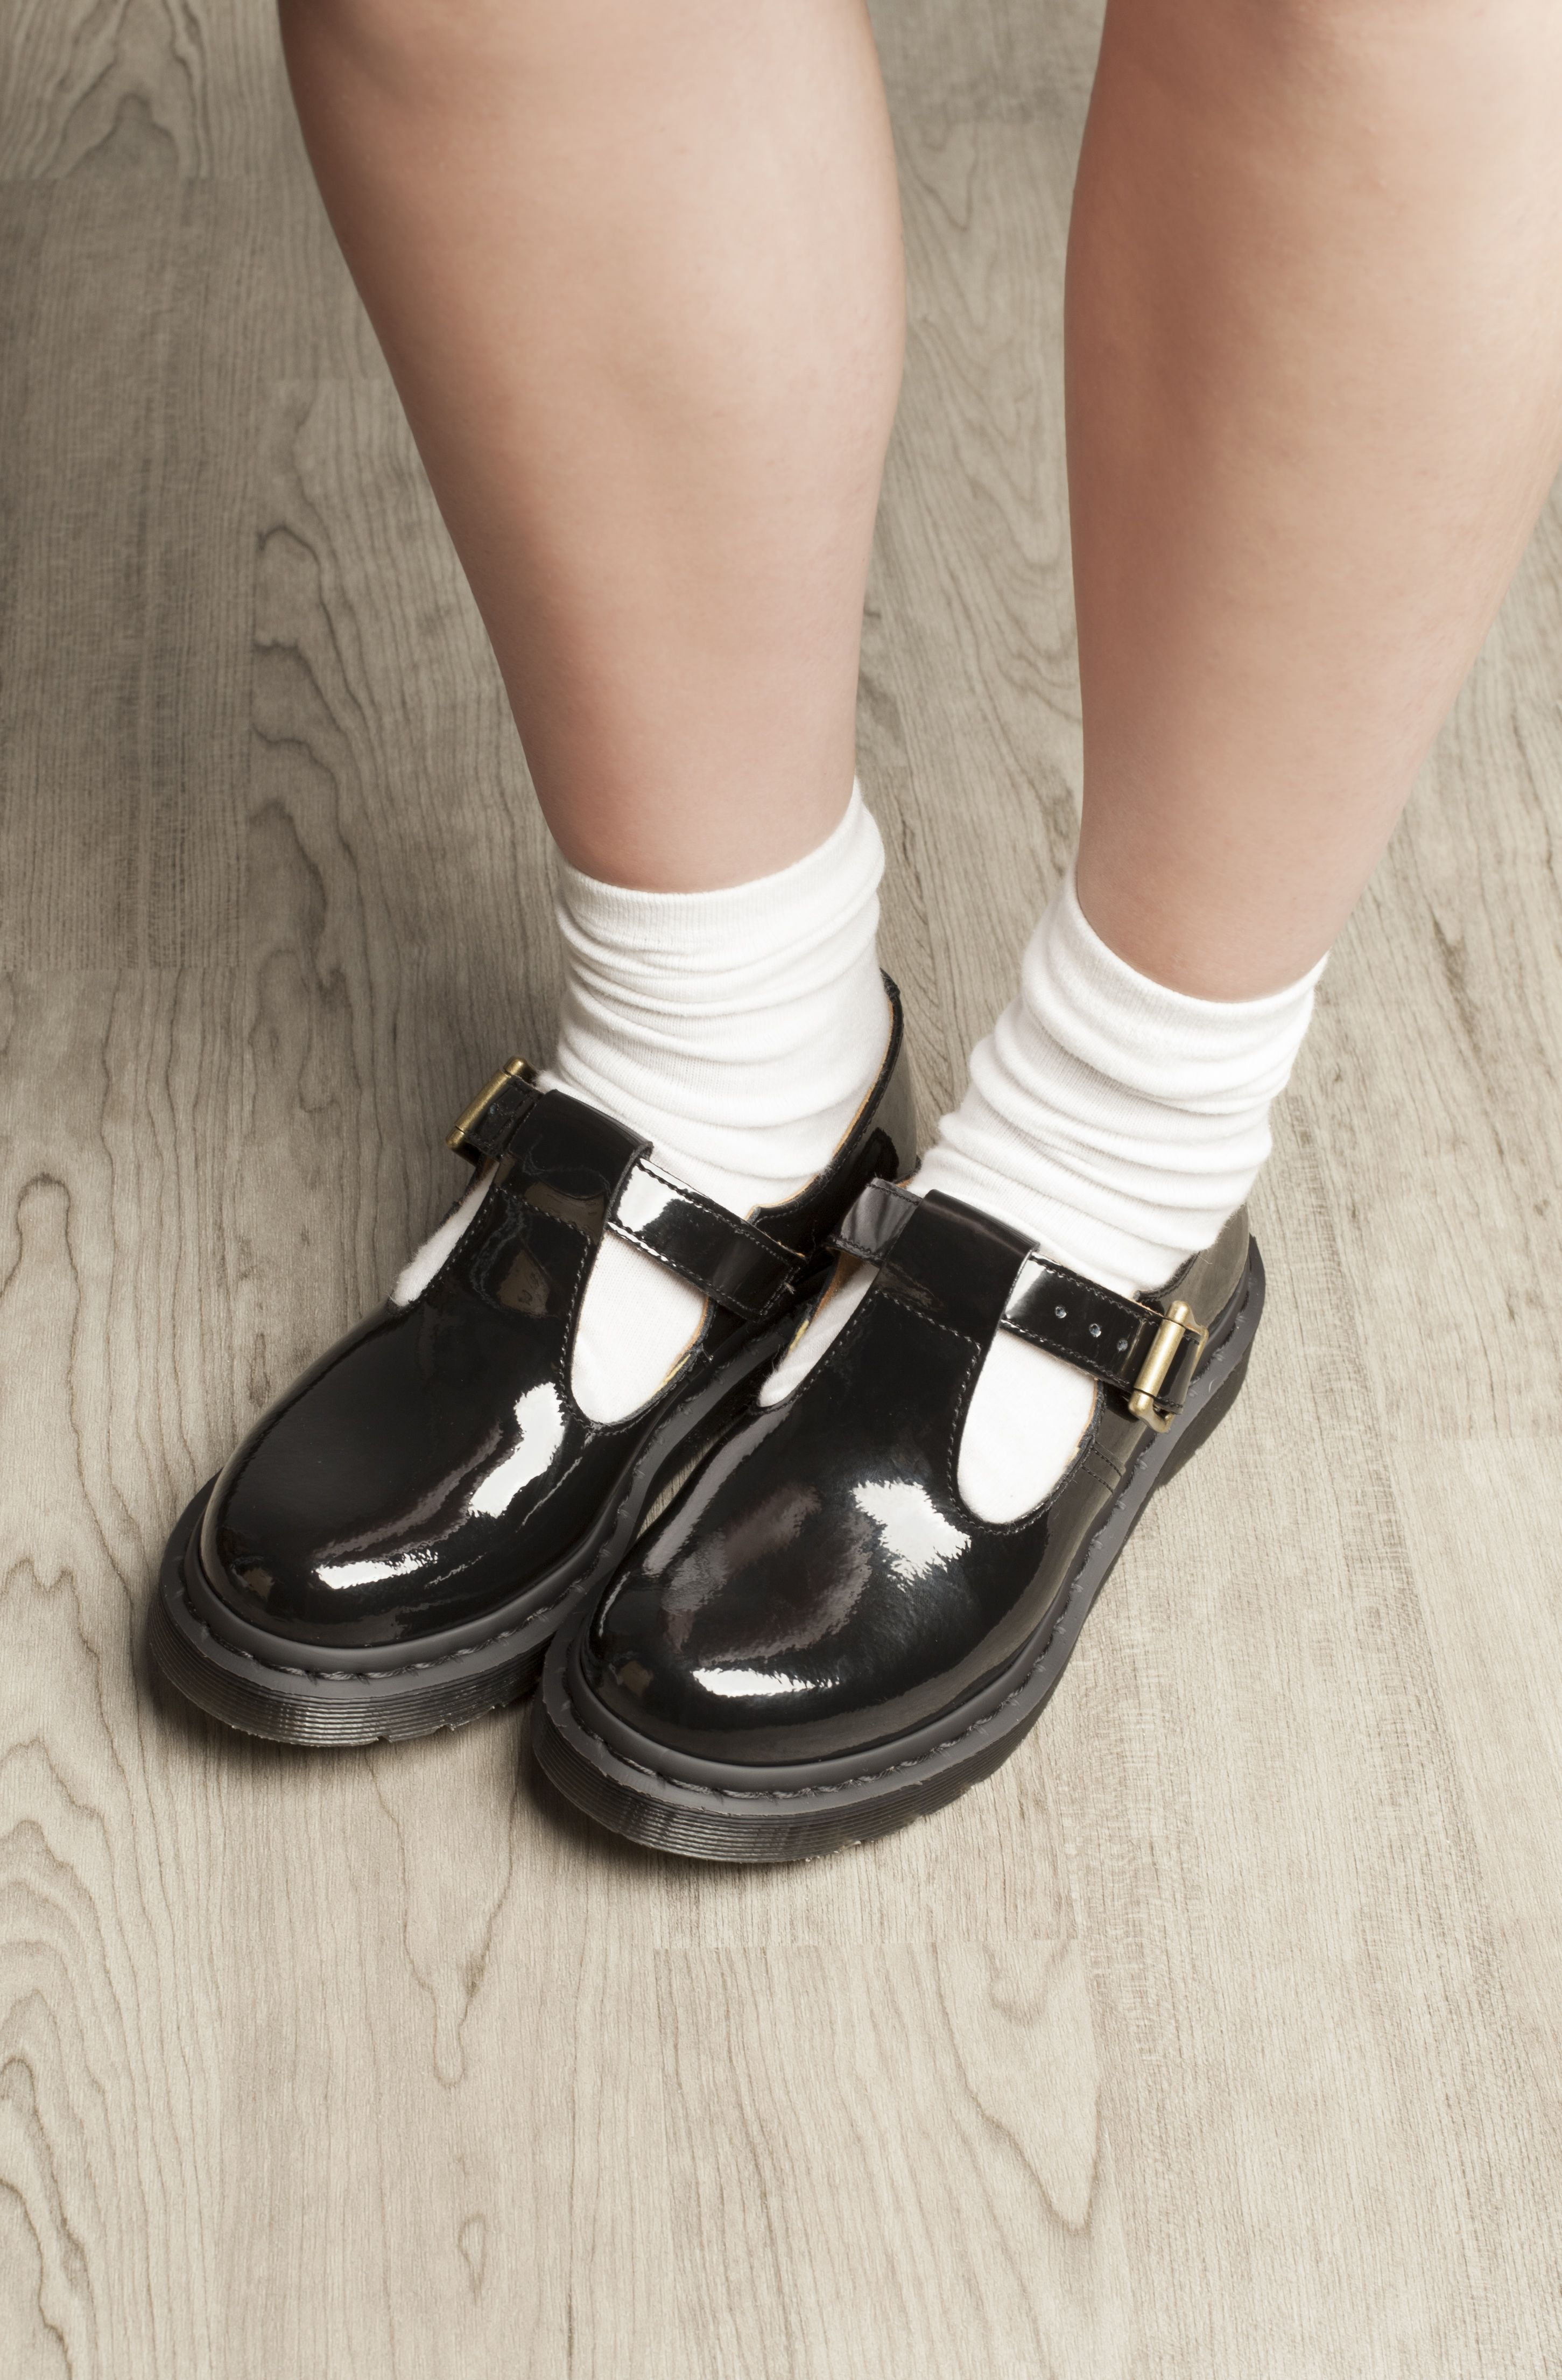 5726efbf3df Smarten up your act in the Dr Martens black patent Polley t-bar flats.  Crisp white ankle socks recommended.